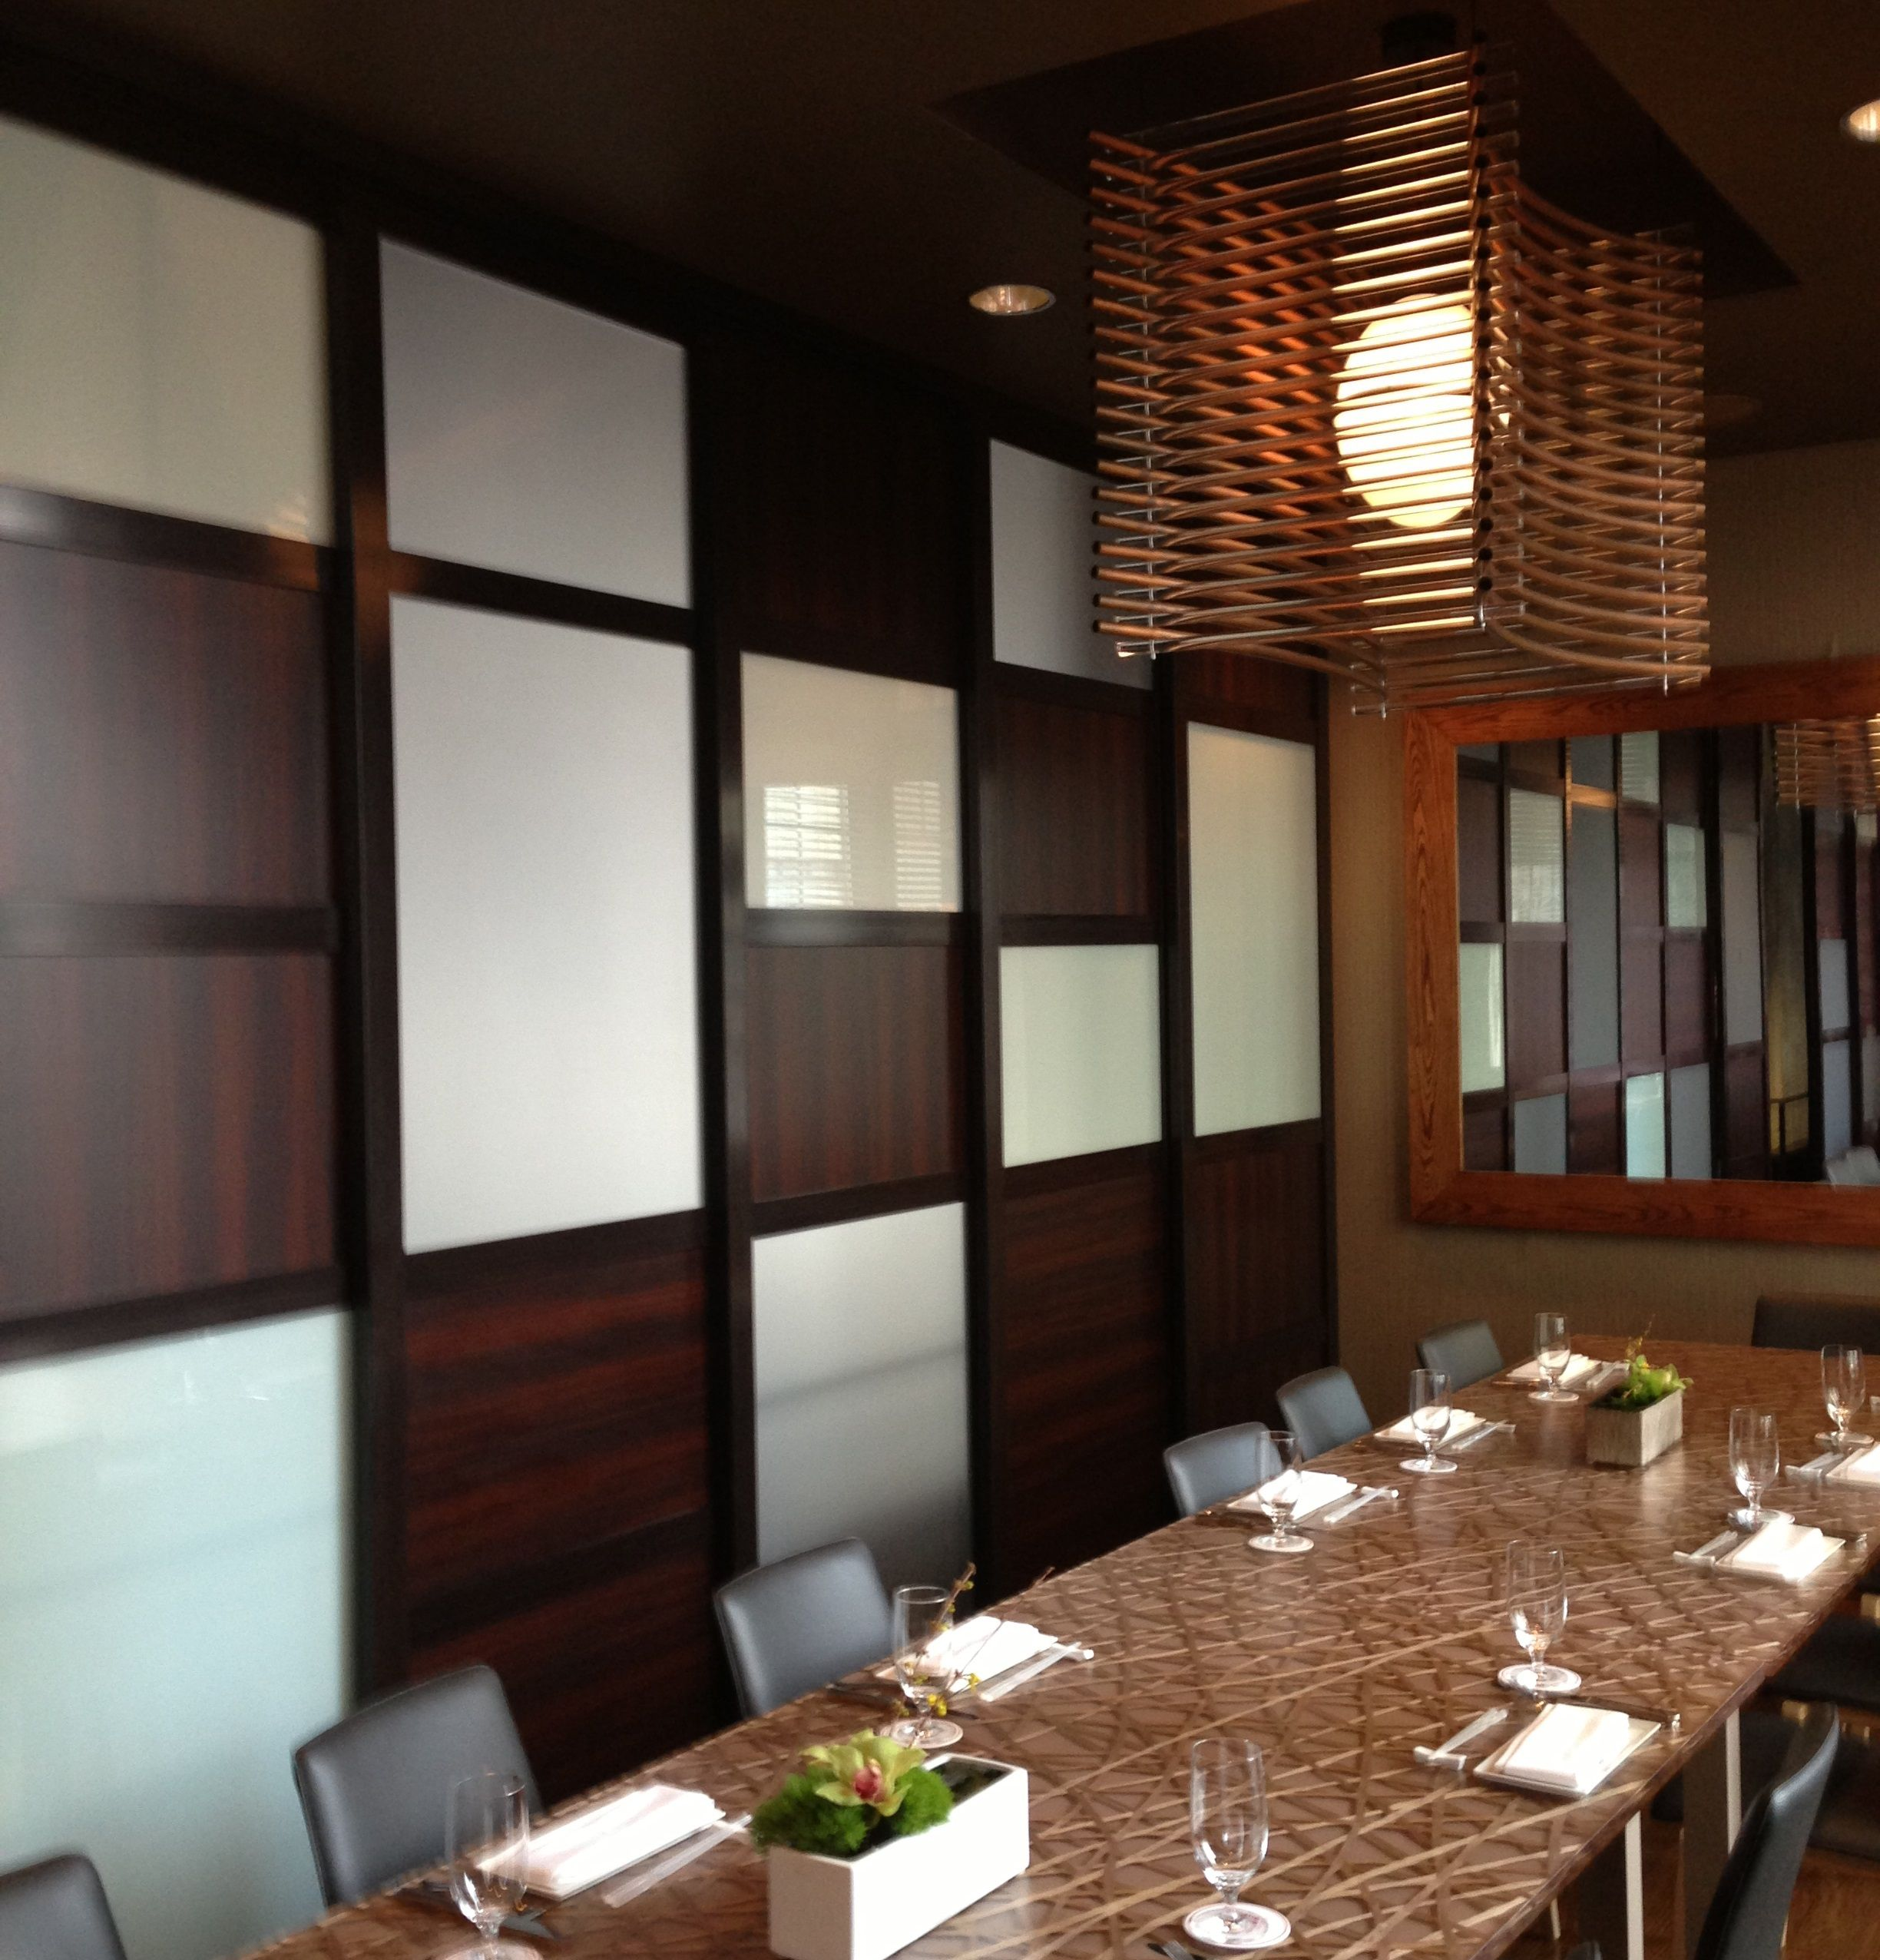 Beautiful Multi Insert Room Divider Installed In A Japanese Restaurant To Create Private Dining Space For Larger Parties